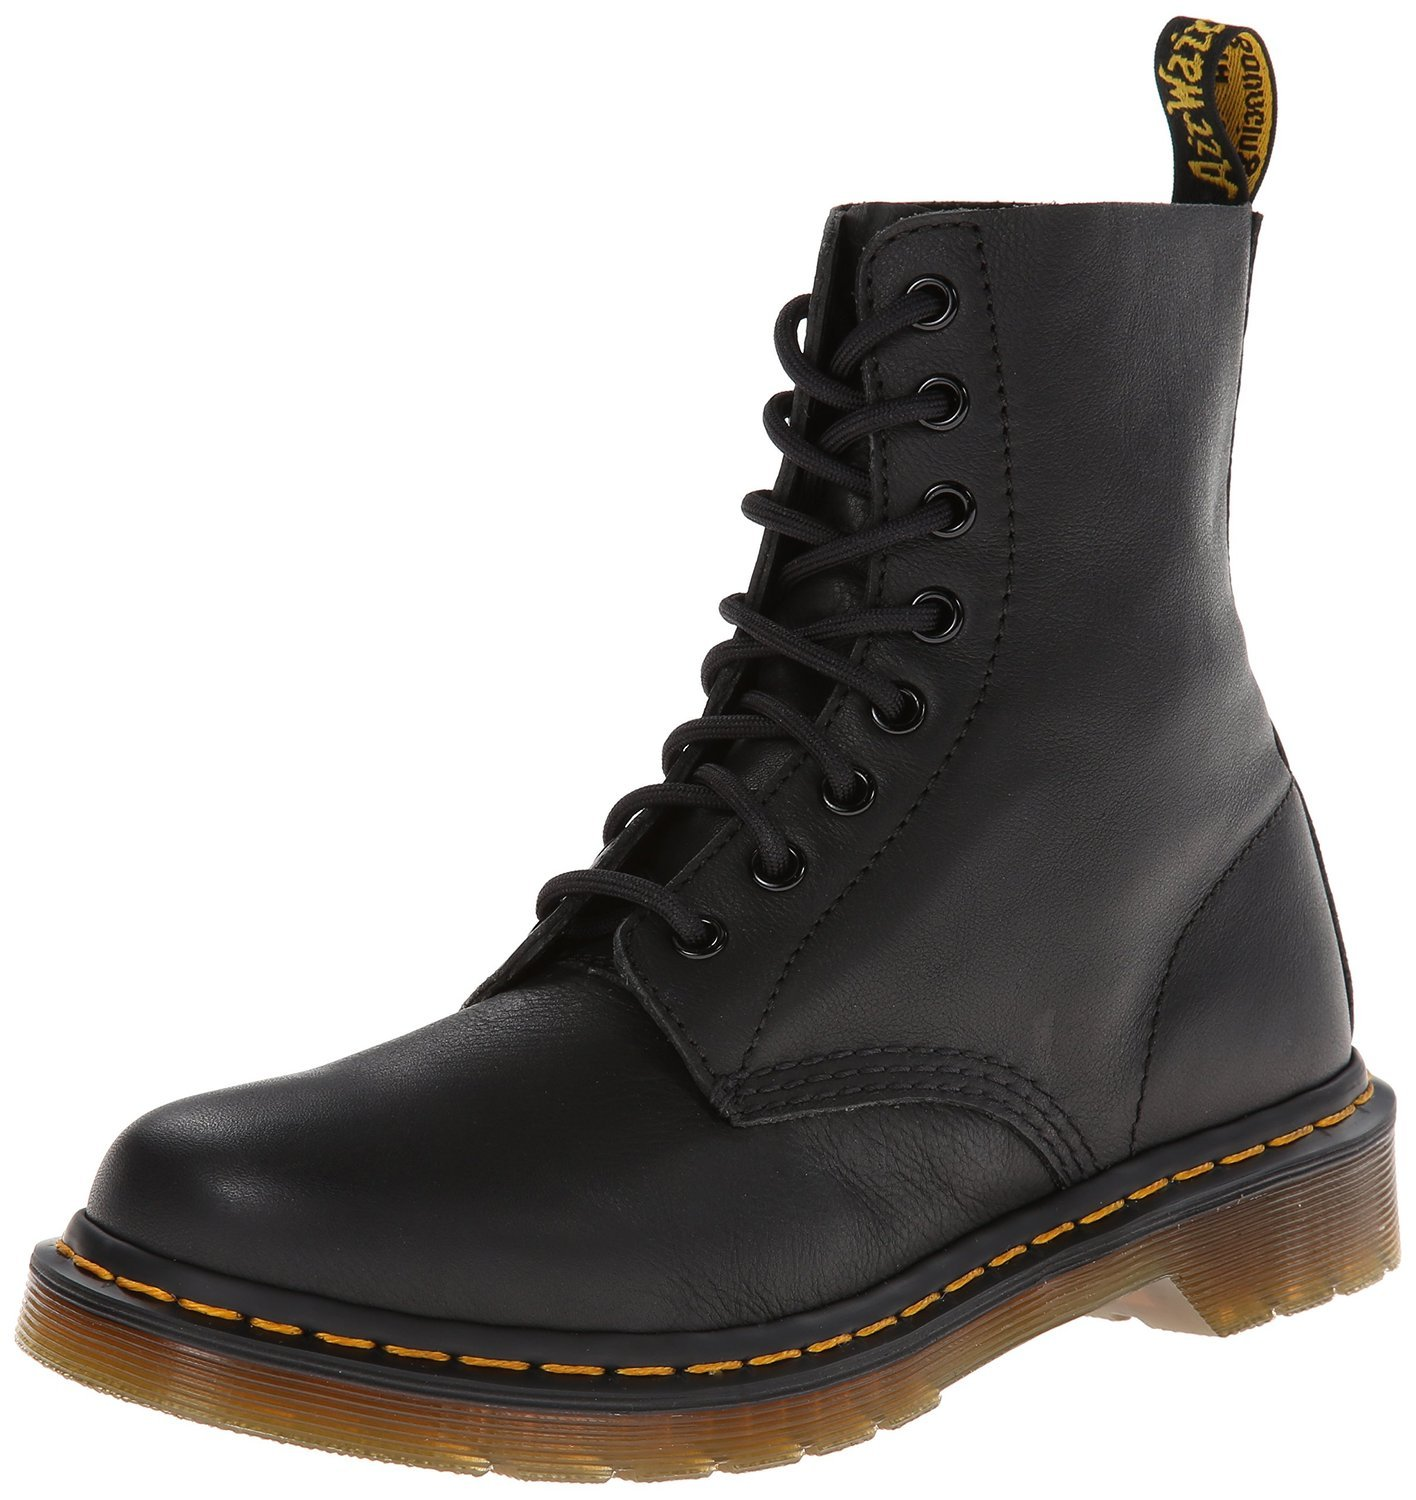 Dr. Martens Women's Pascal Combat Boot, Black, 4 UK/6 M US